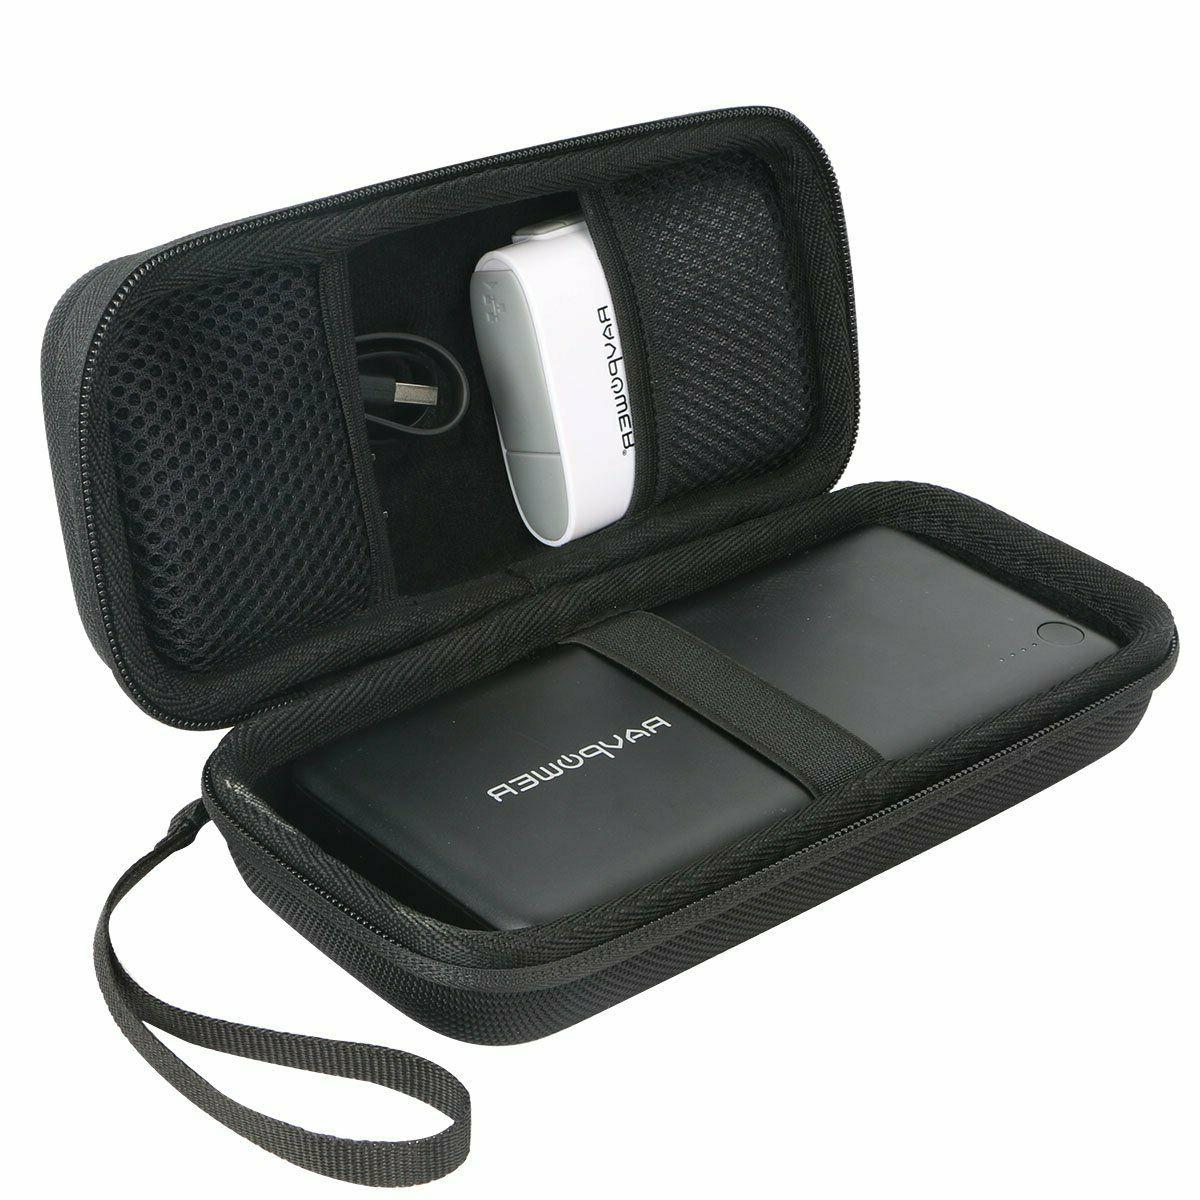 Khanka Hard Travel Case for RAVPower 26800mAh PD Portable Ch